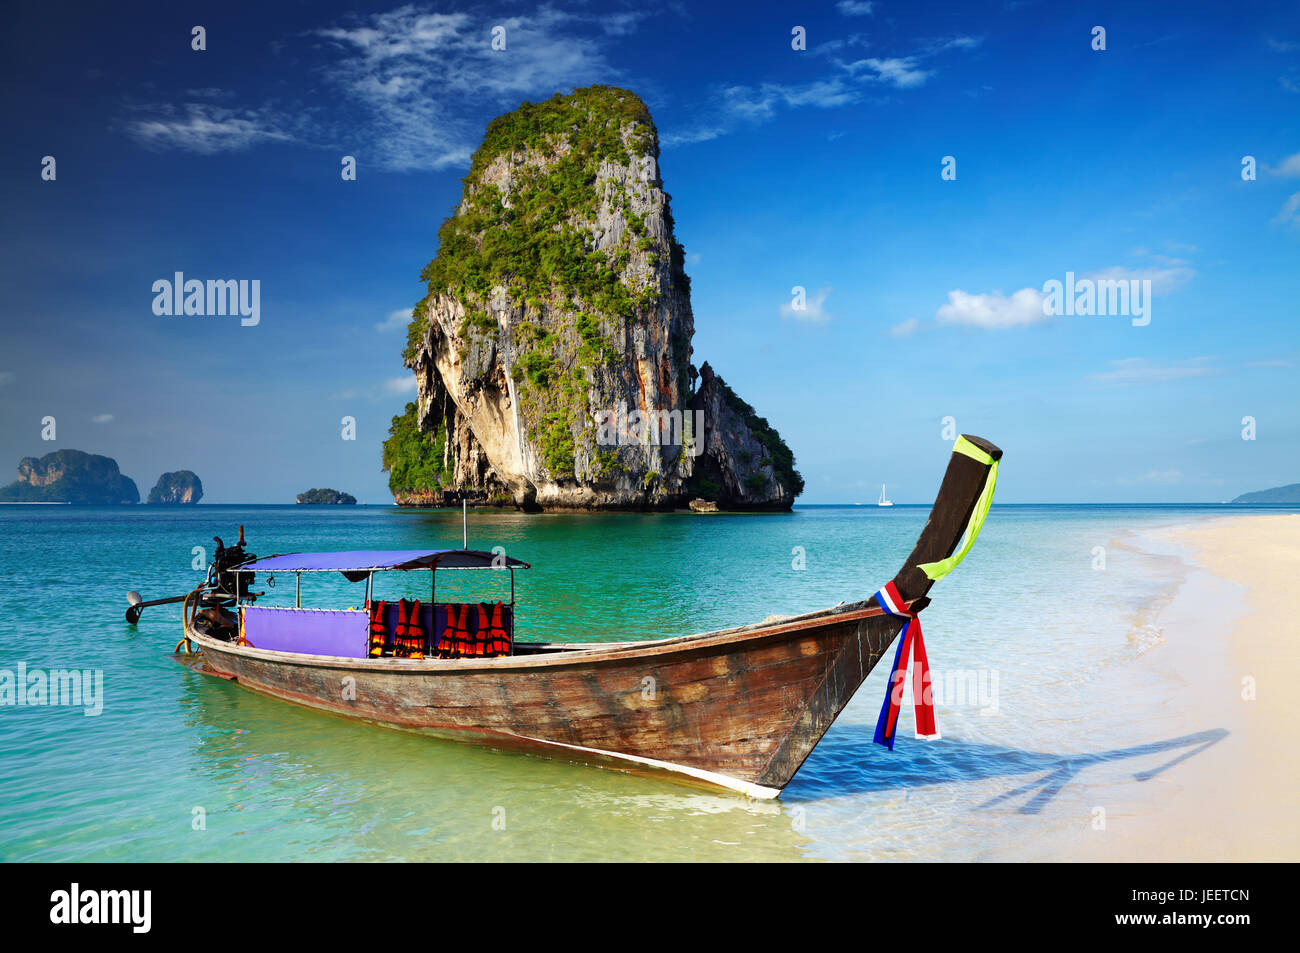 Tropical beach, longtail boat, Andaman Sea, Thailand - Stock Image